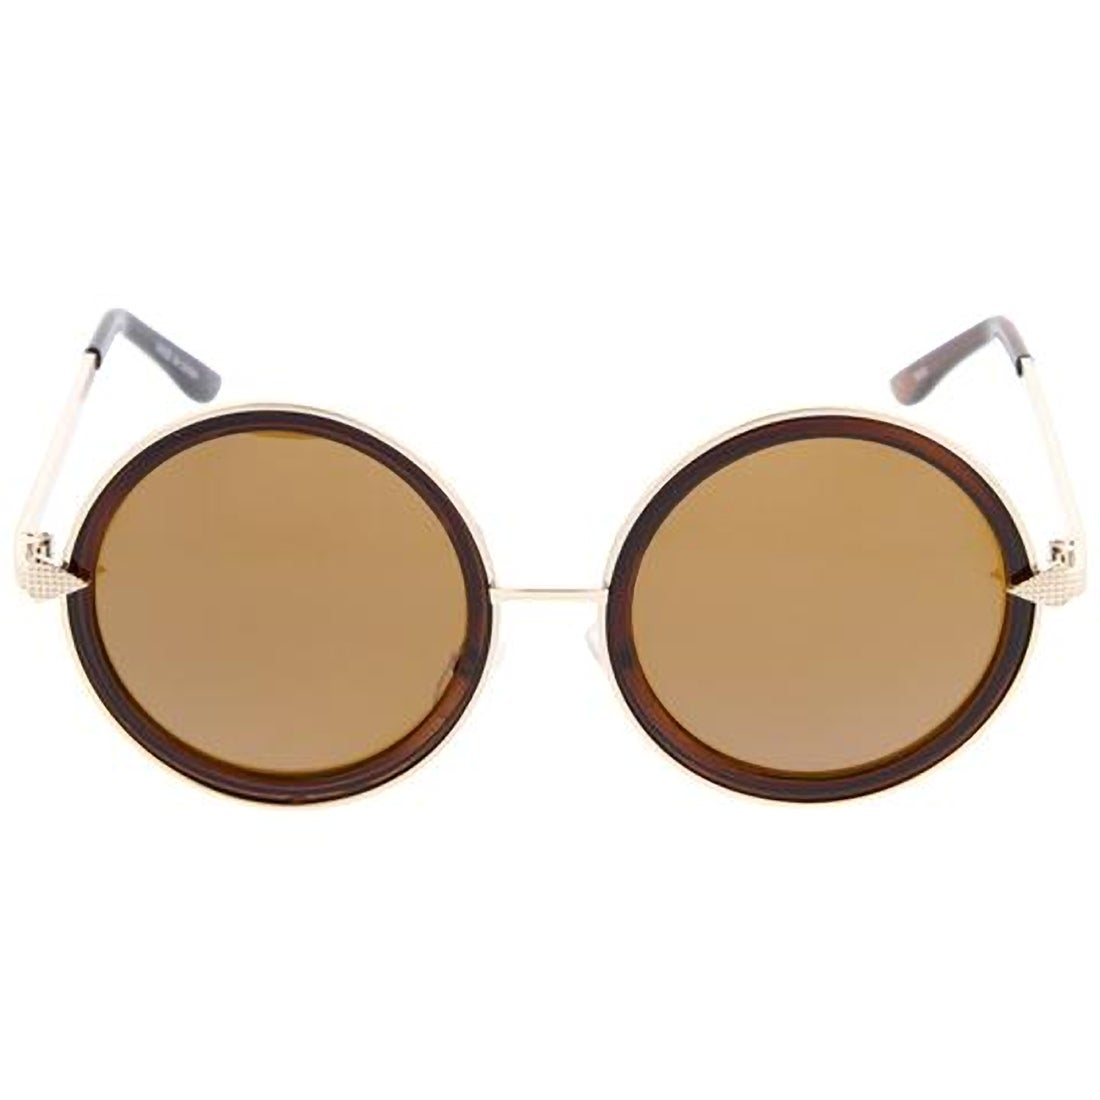 c3d73d97bf Shop Epic Eyewear Retro Fashion Round Thick Frame Women Sunglasses Model 55  - Free Shipping On Orders Over  45 - Overstock - 16850830